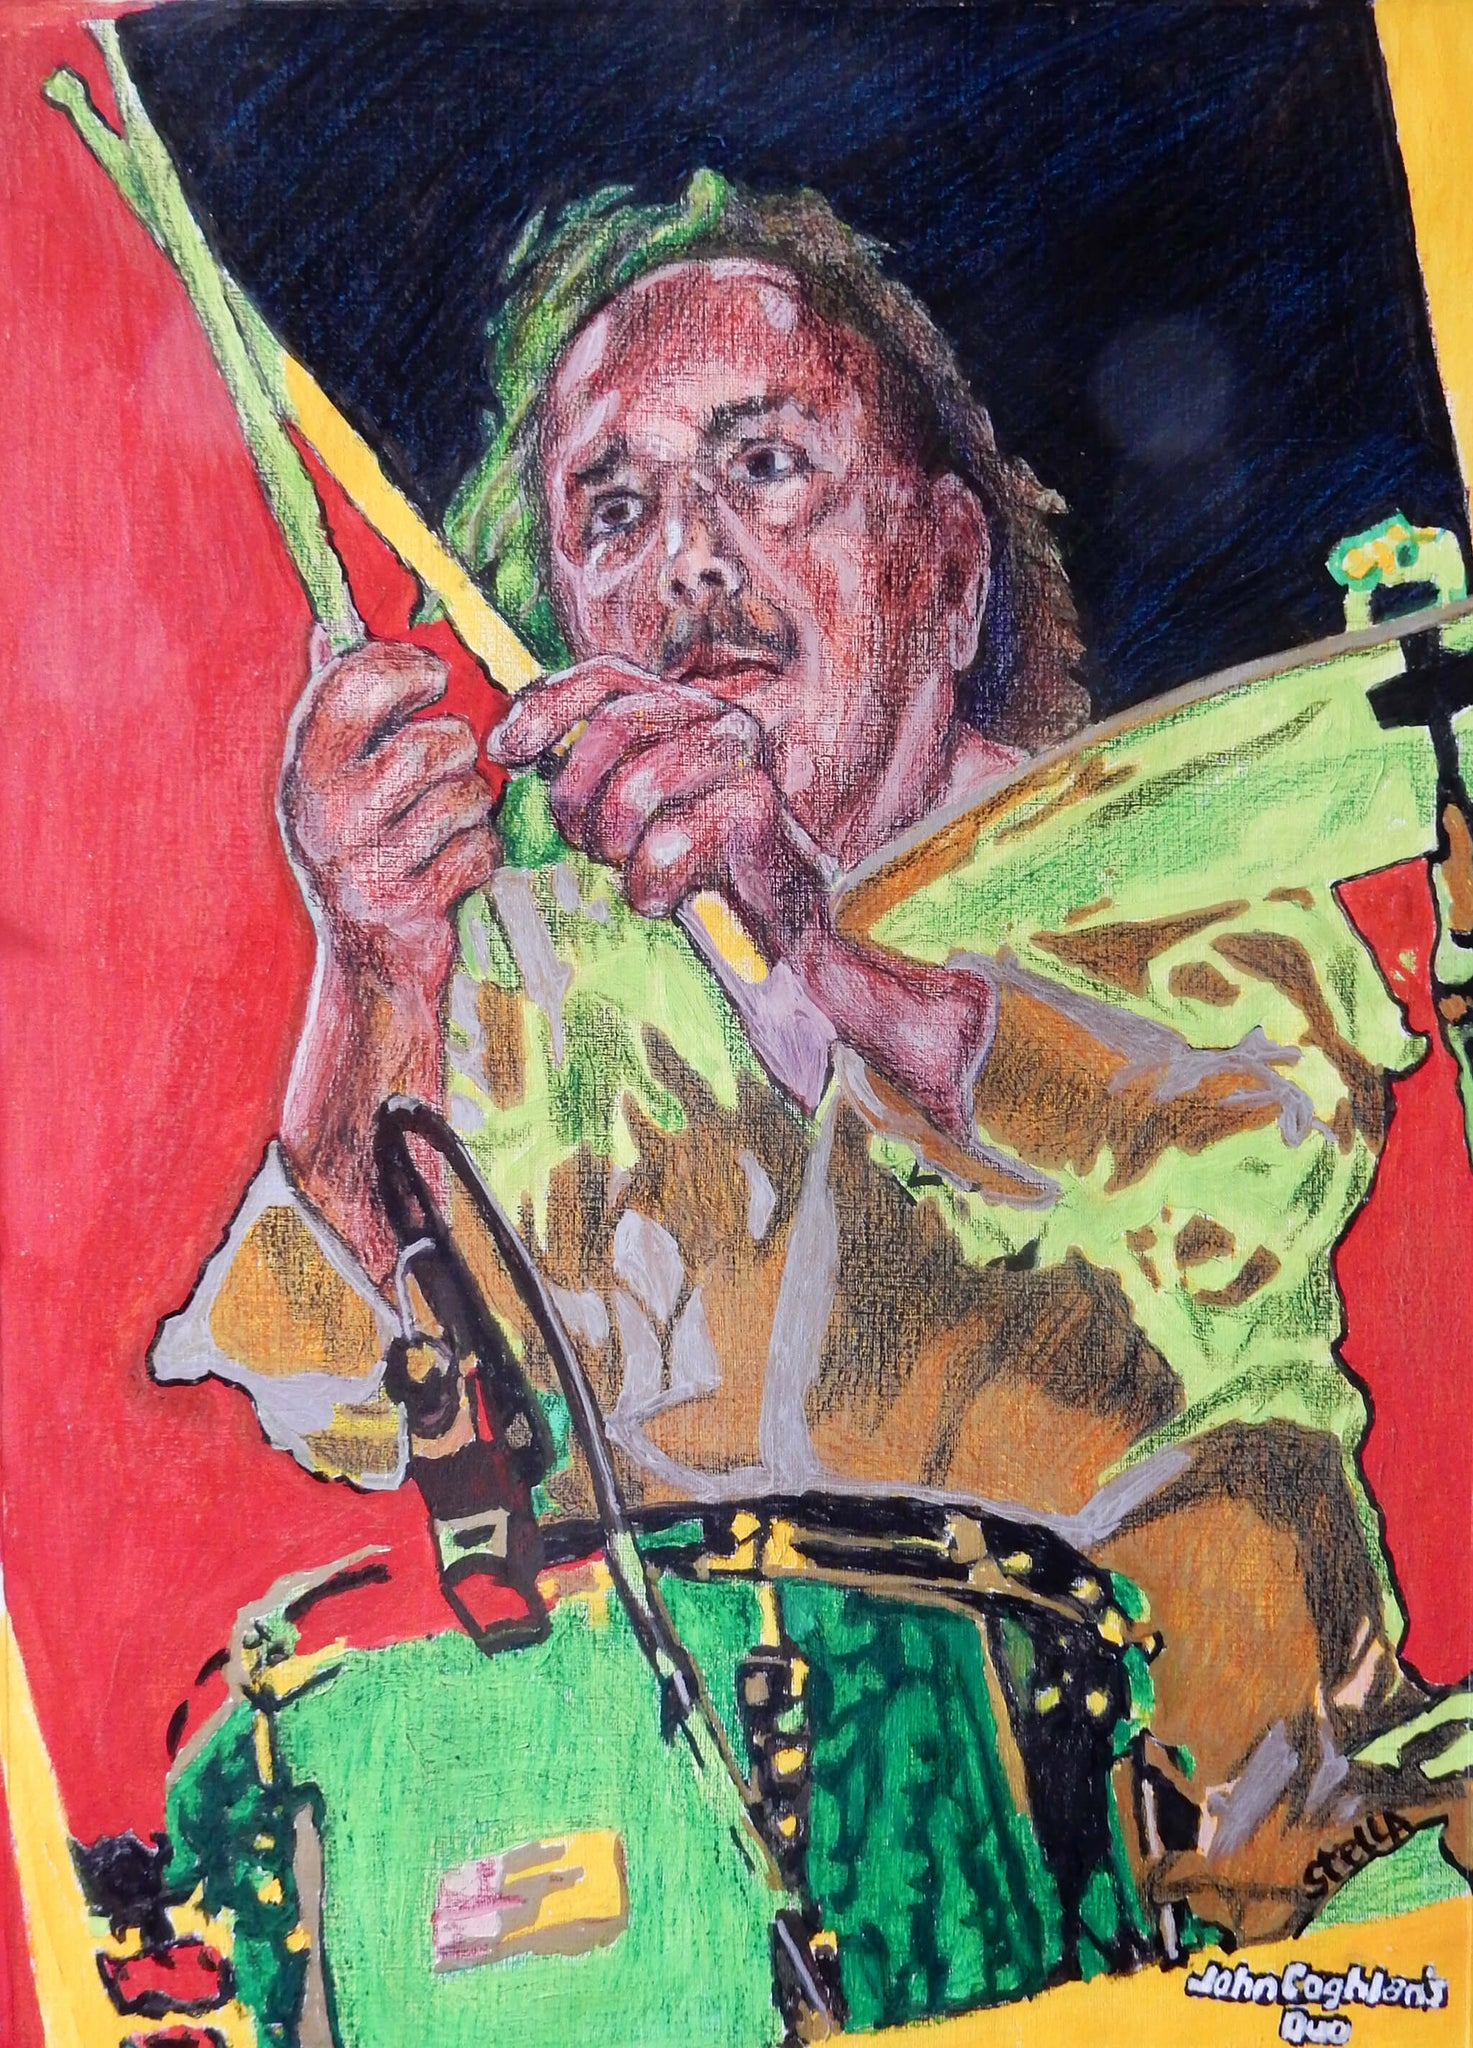 John Coghlan's Quo at Half Moon Putney mixed media portrait artwork by Stella Tooth